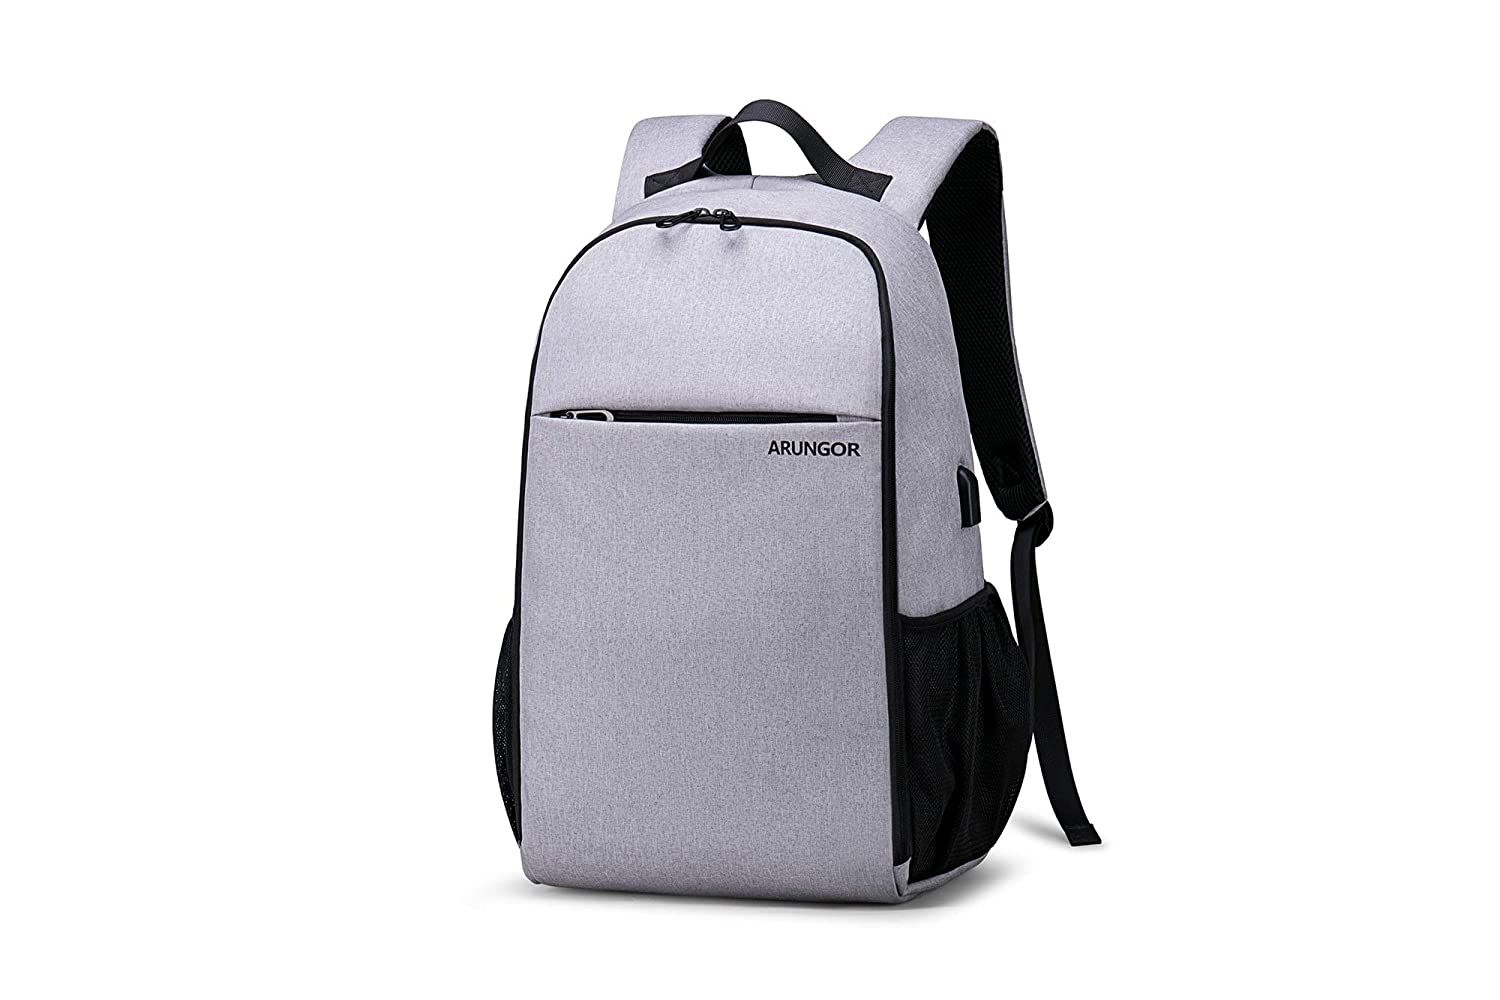 932d74ca3 Amazon.com: School Laptop Backpack for Boys & Girls, ARUNGOR College  Bookbag for Men and Women Student (Gray-35): Computers & Accessories